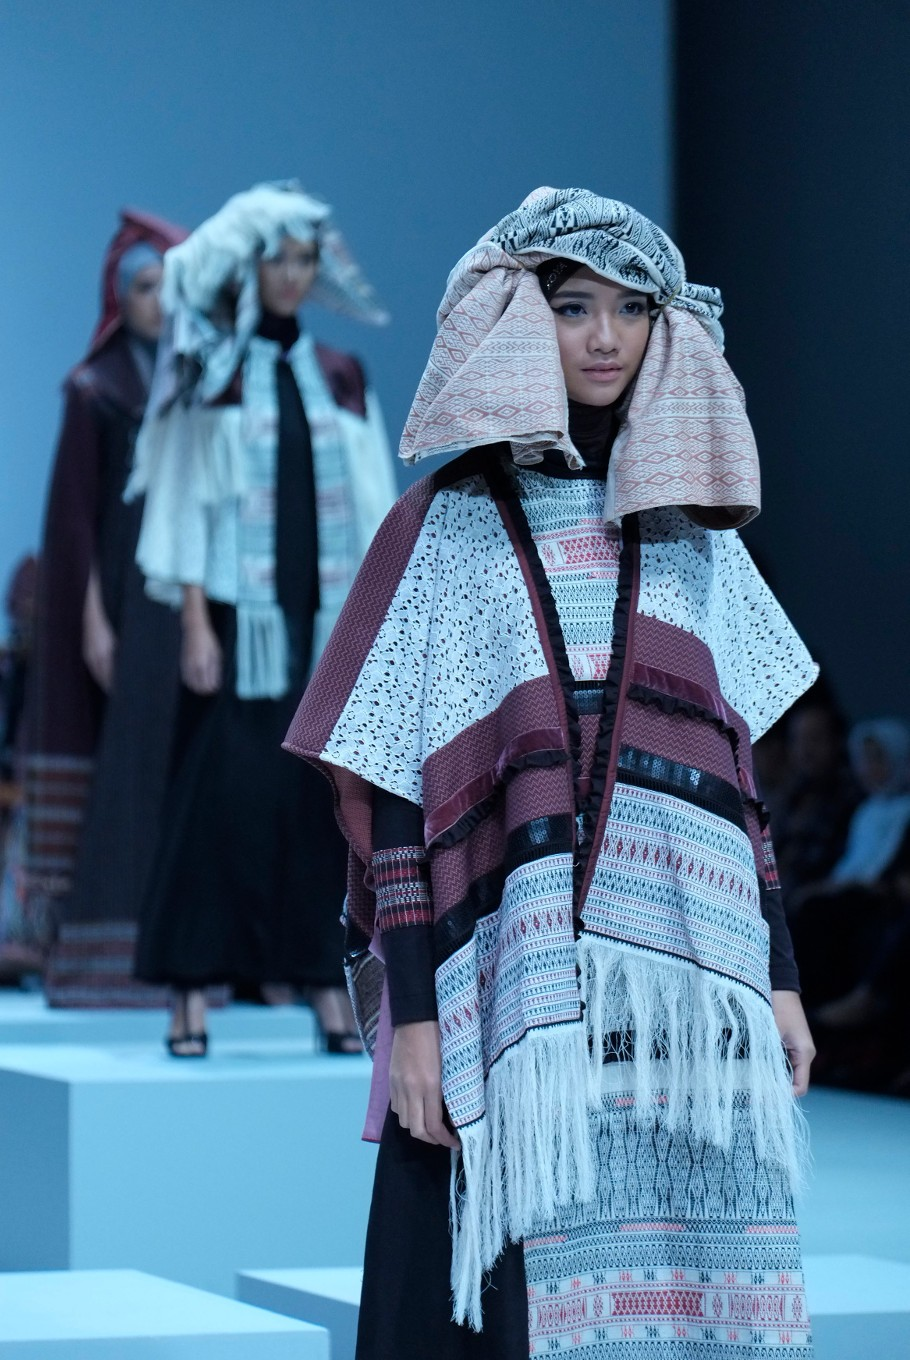 A model wears an example from the ethnic collection by designer Torang Sitorus (JP/Jerry Adiguna).